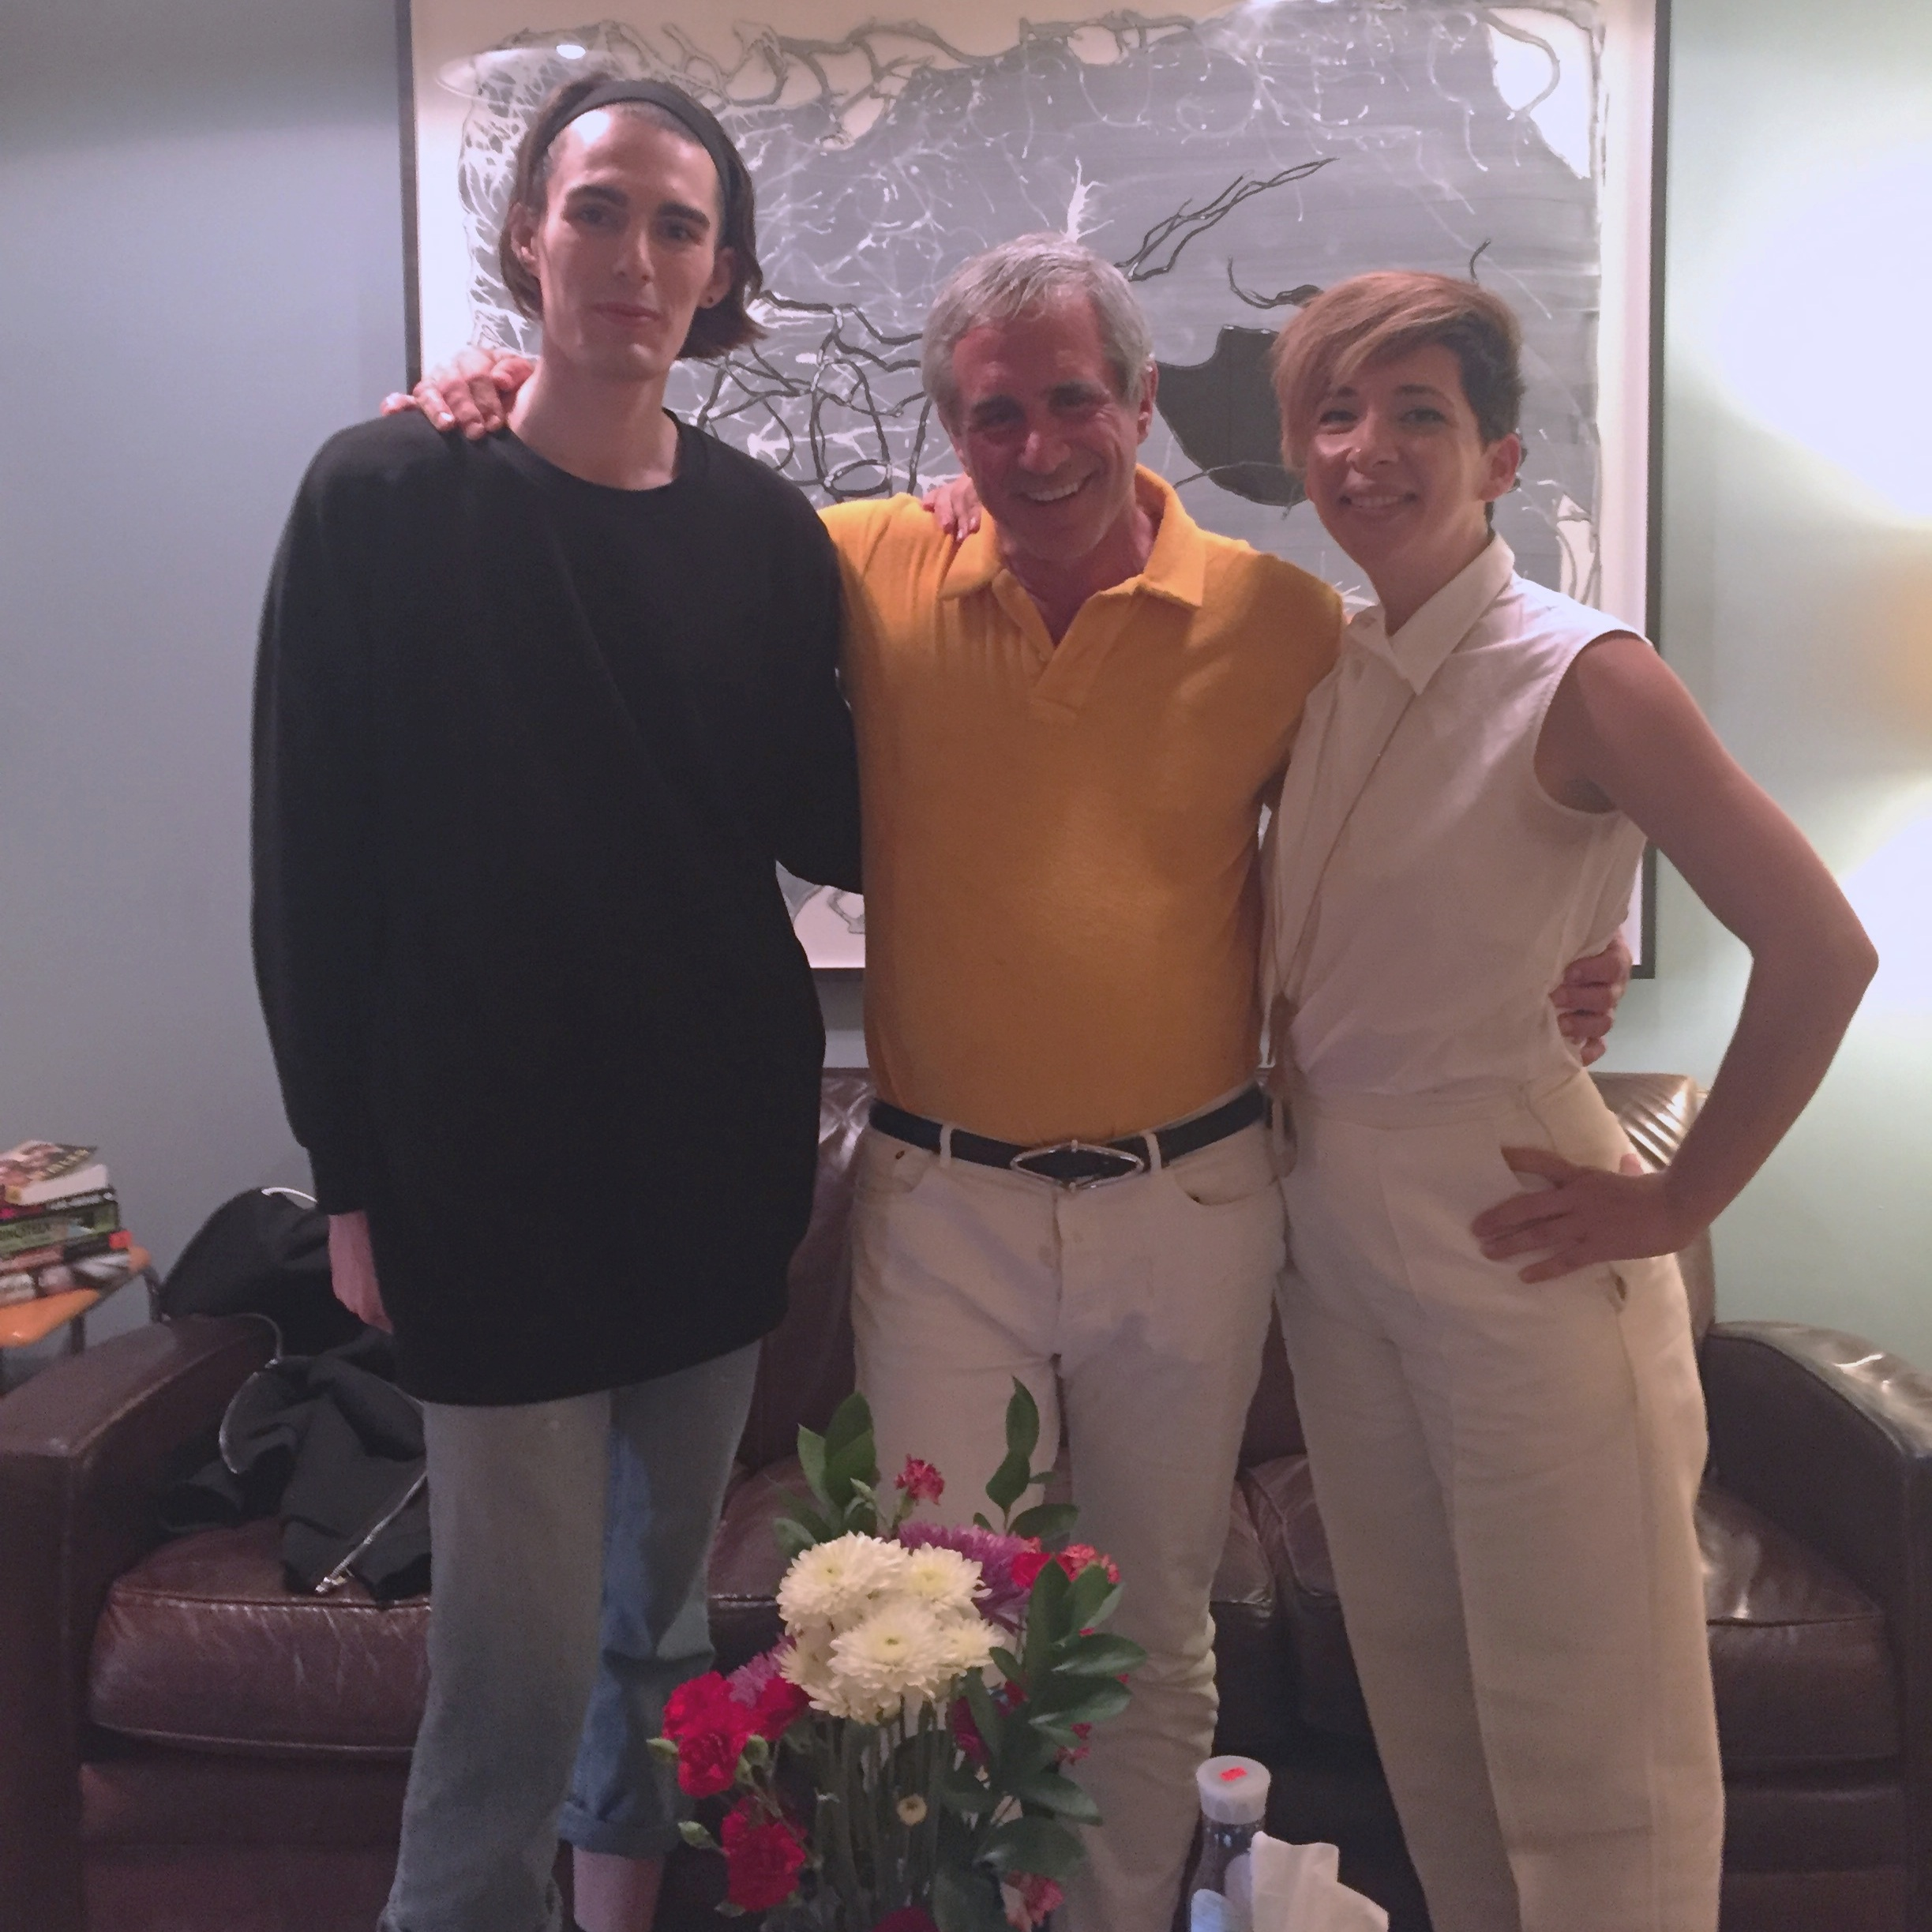 From left: Violette Furton, Dennis Freedman, and Shirine Saad.